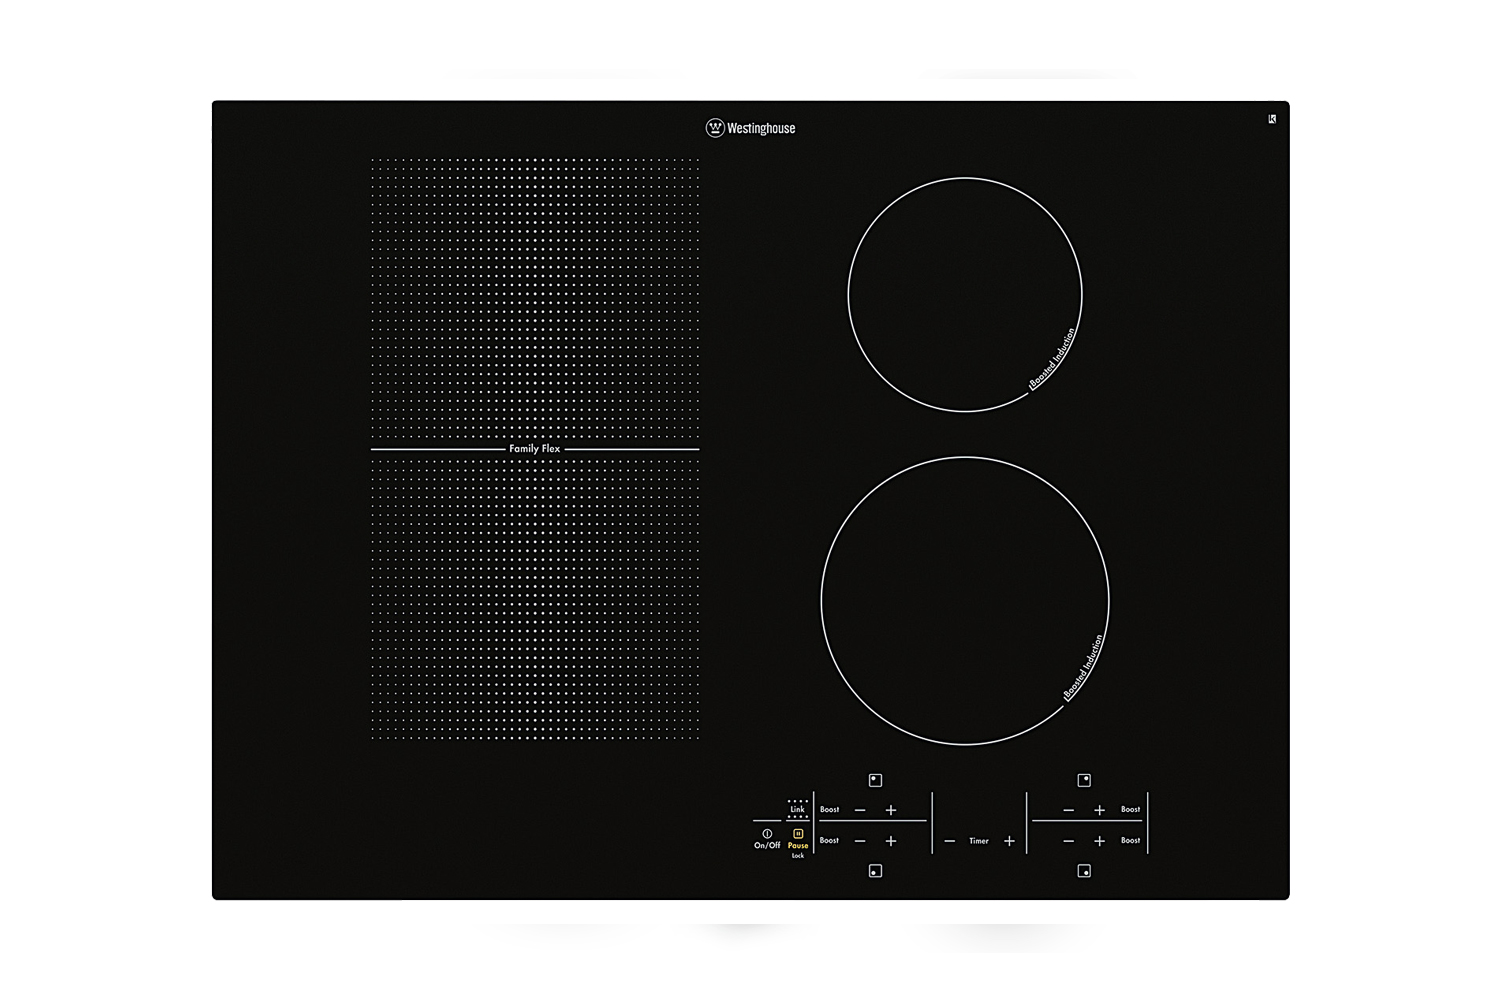 70cm Induction Cooktop Westinghouse 70cm Induction Cooktop